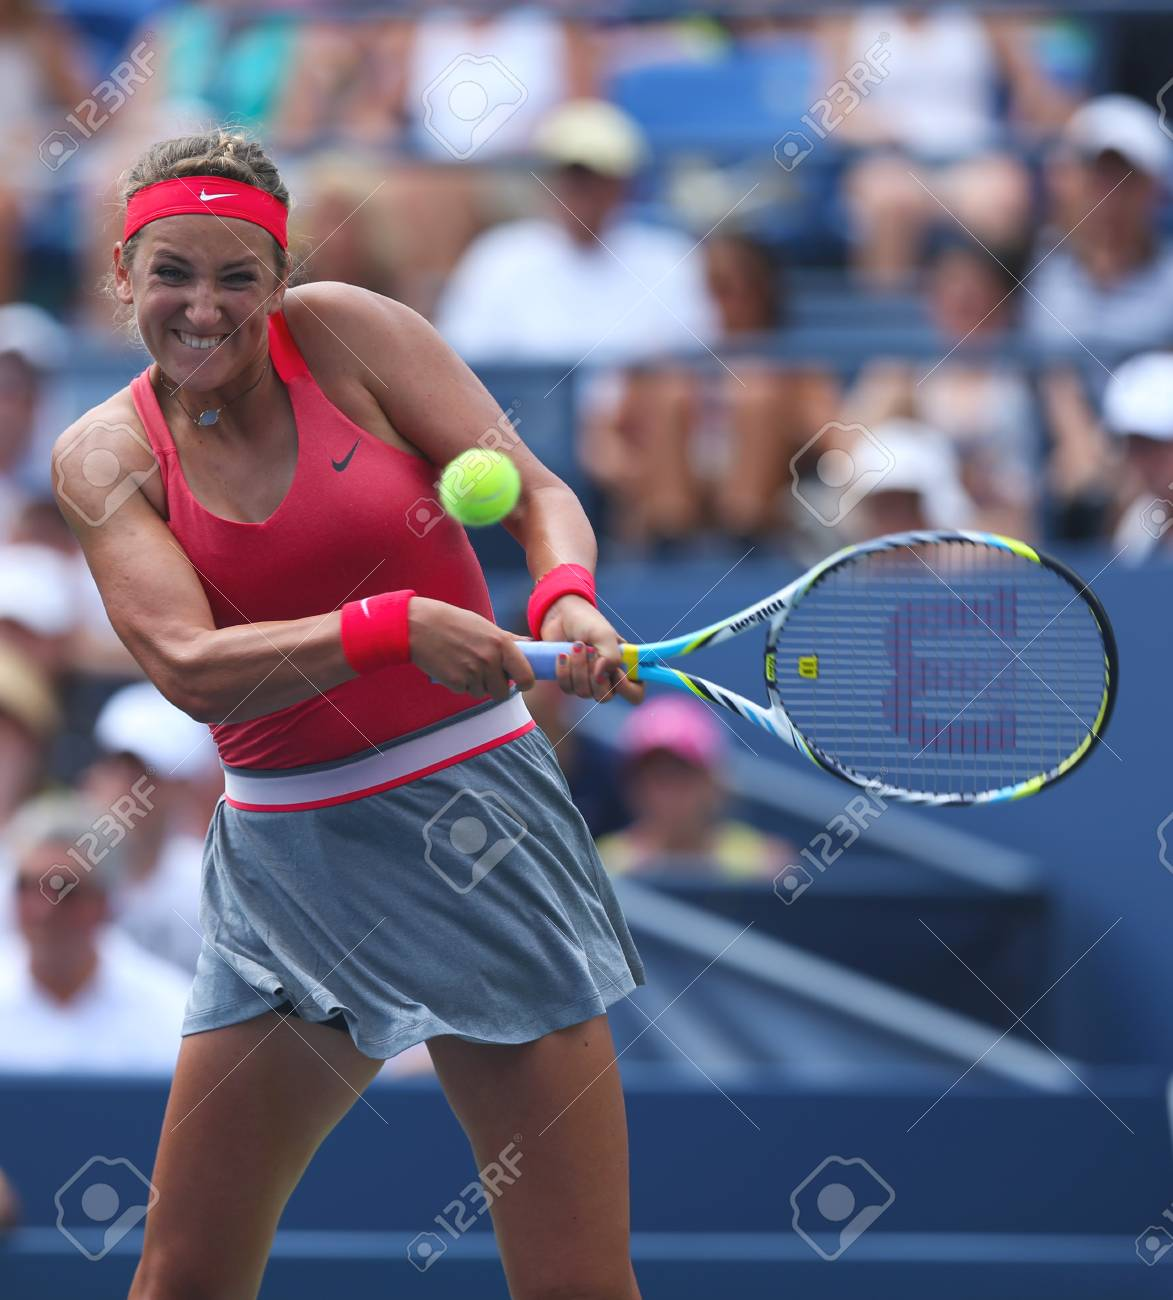 Victoria Azarenka 2 Grand Slam singles titles